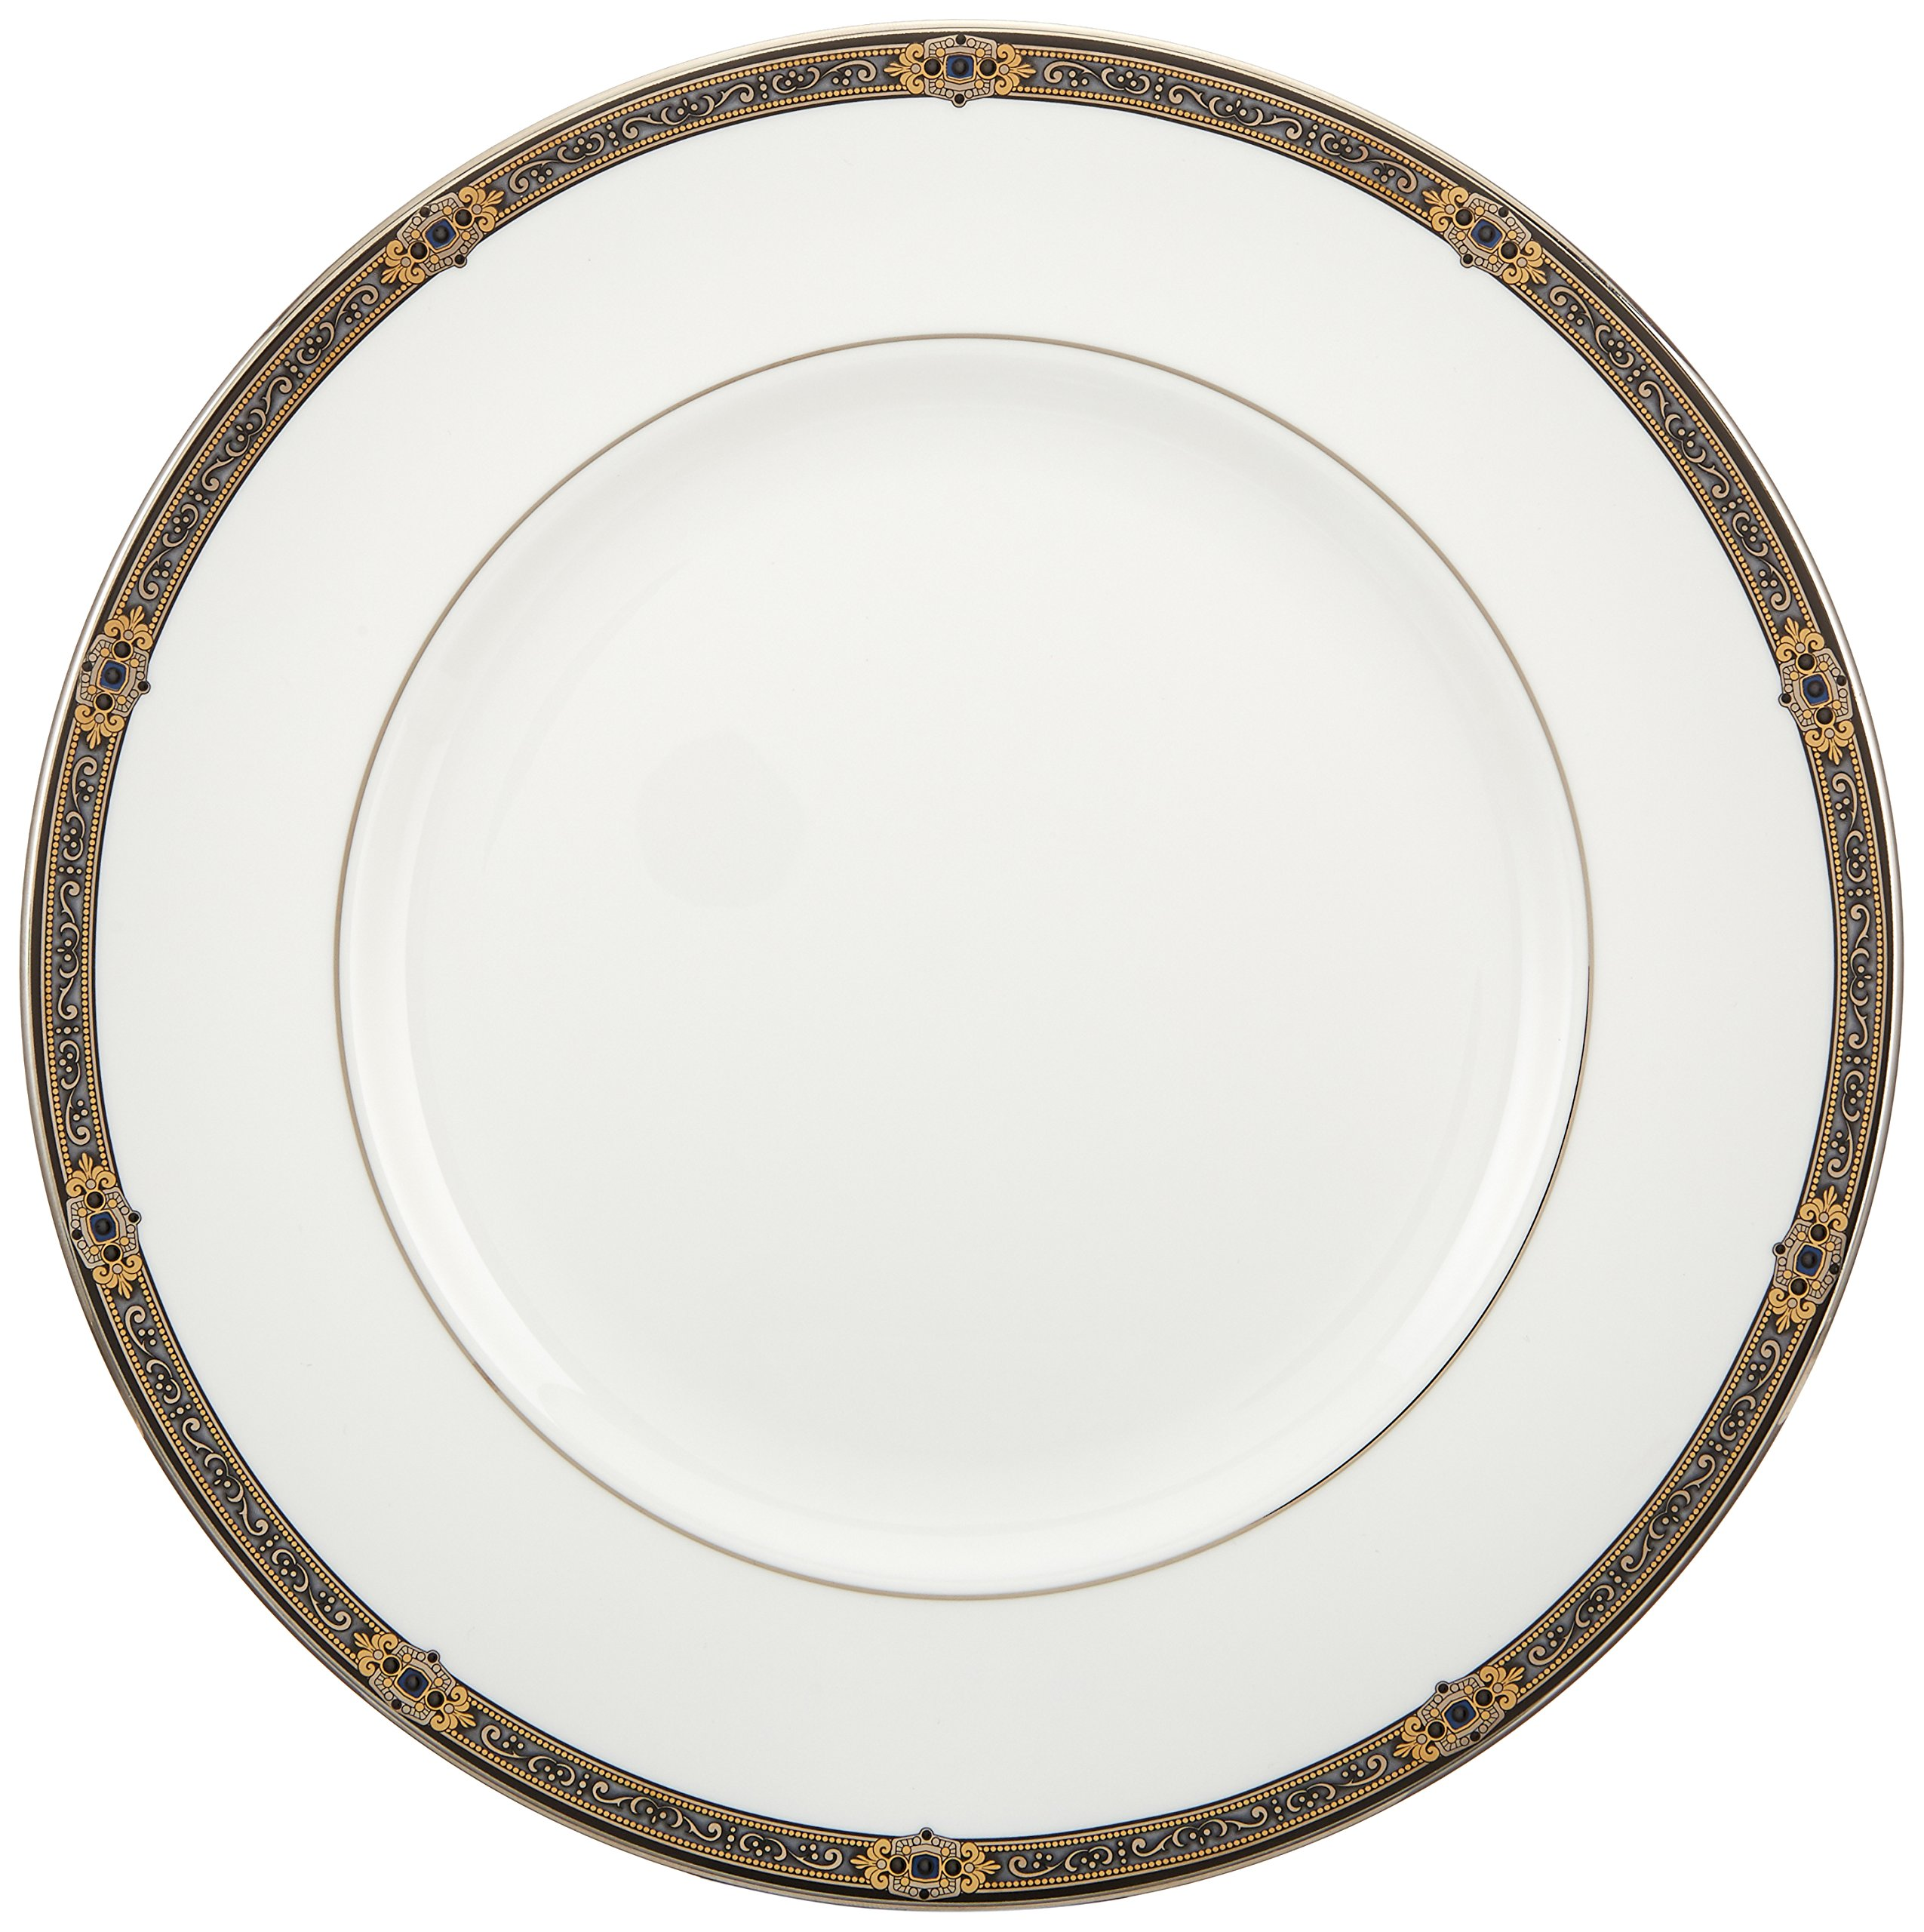 Lenox Vintage Jewel Platinum-Banded Bone China 5-Piece Place Setting, Service for 1 by Lenox (Image #3)